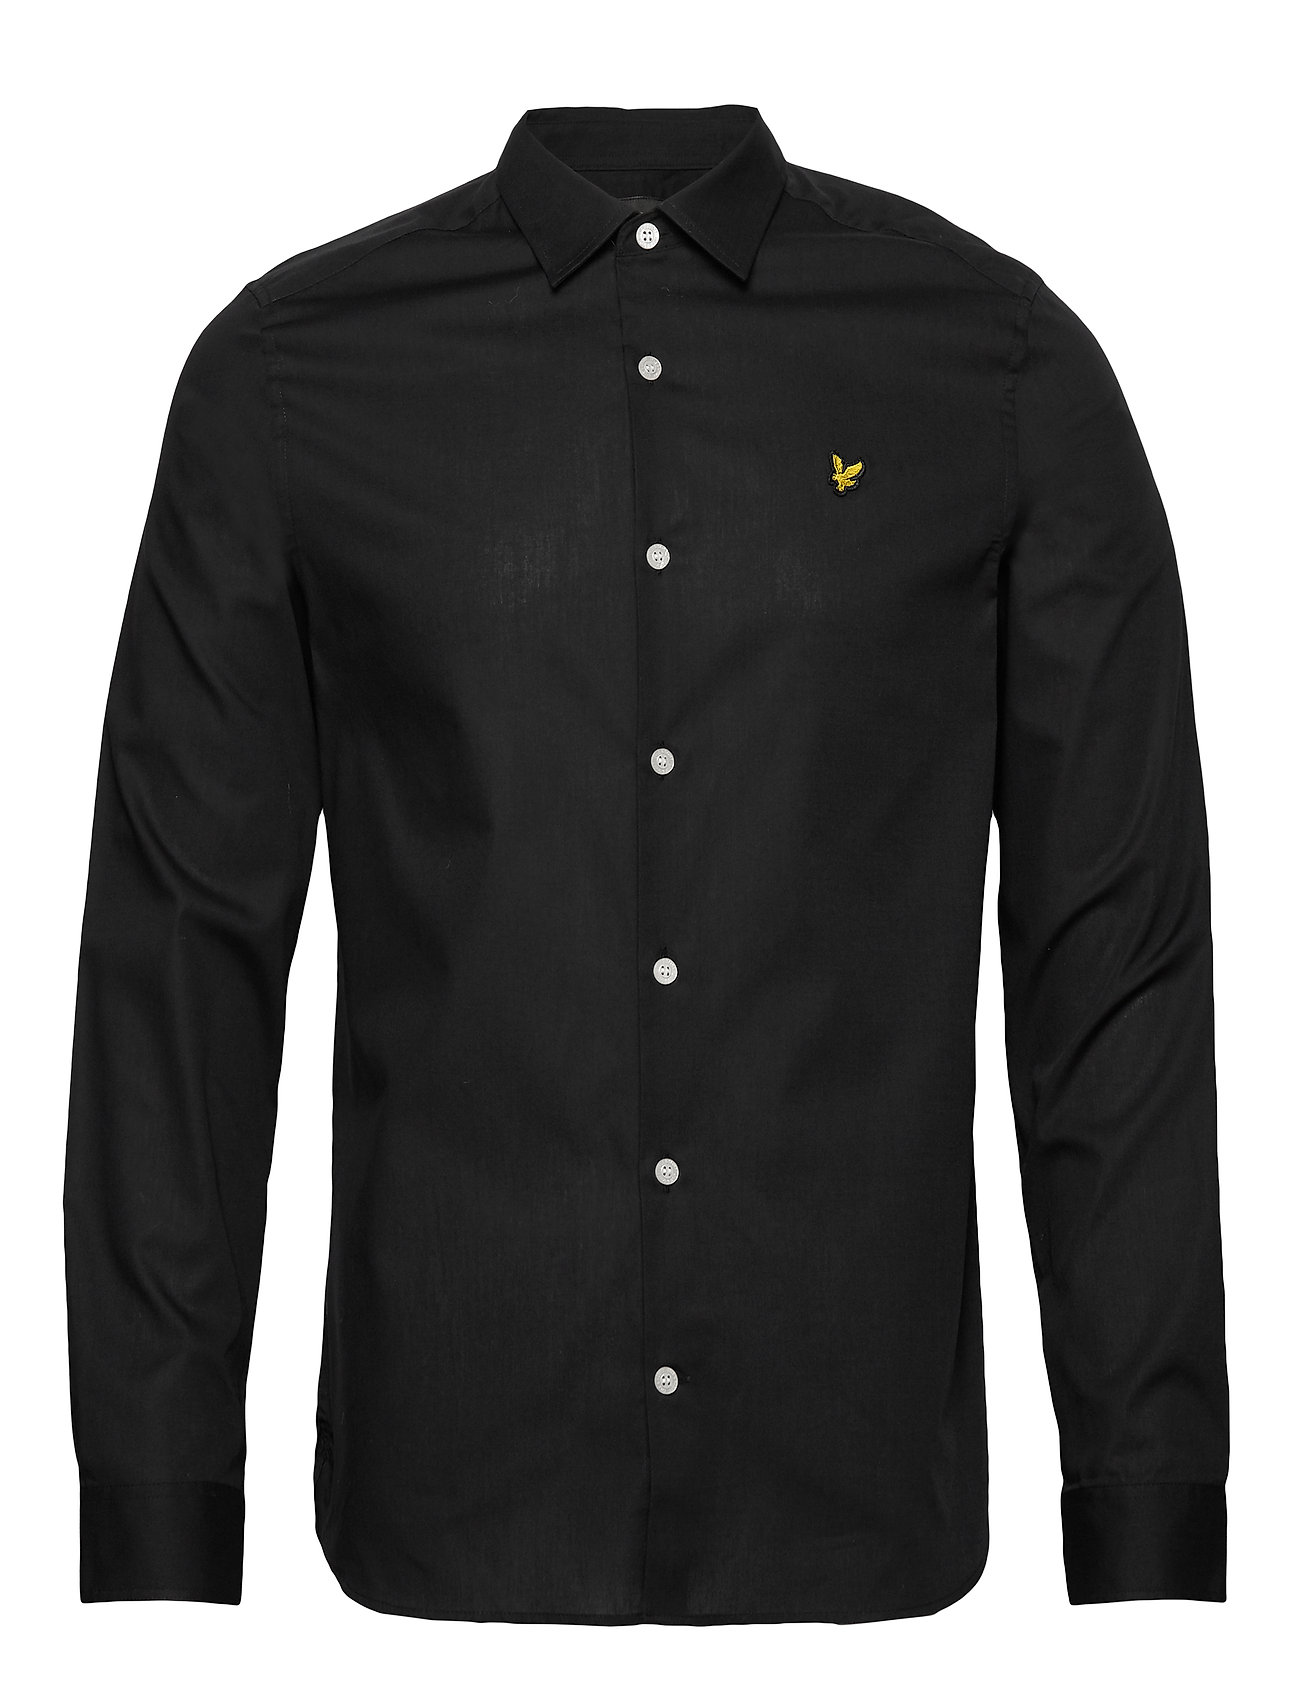 Lyle & Scott LS Slim Fit Poplin Shirt - TRUE BLACK